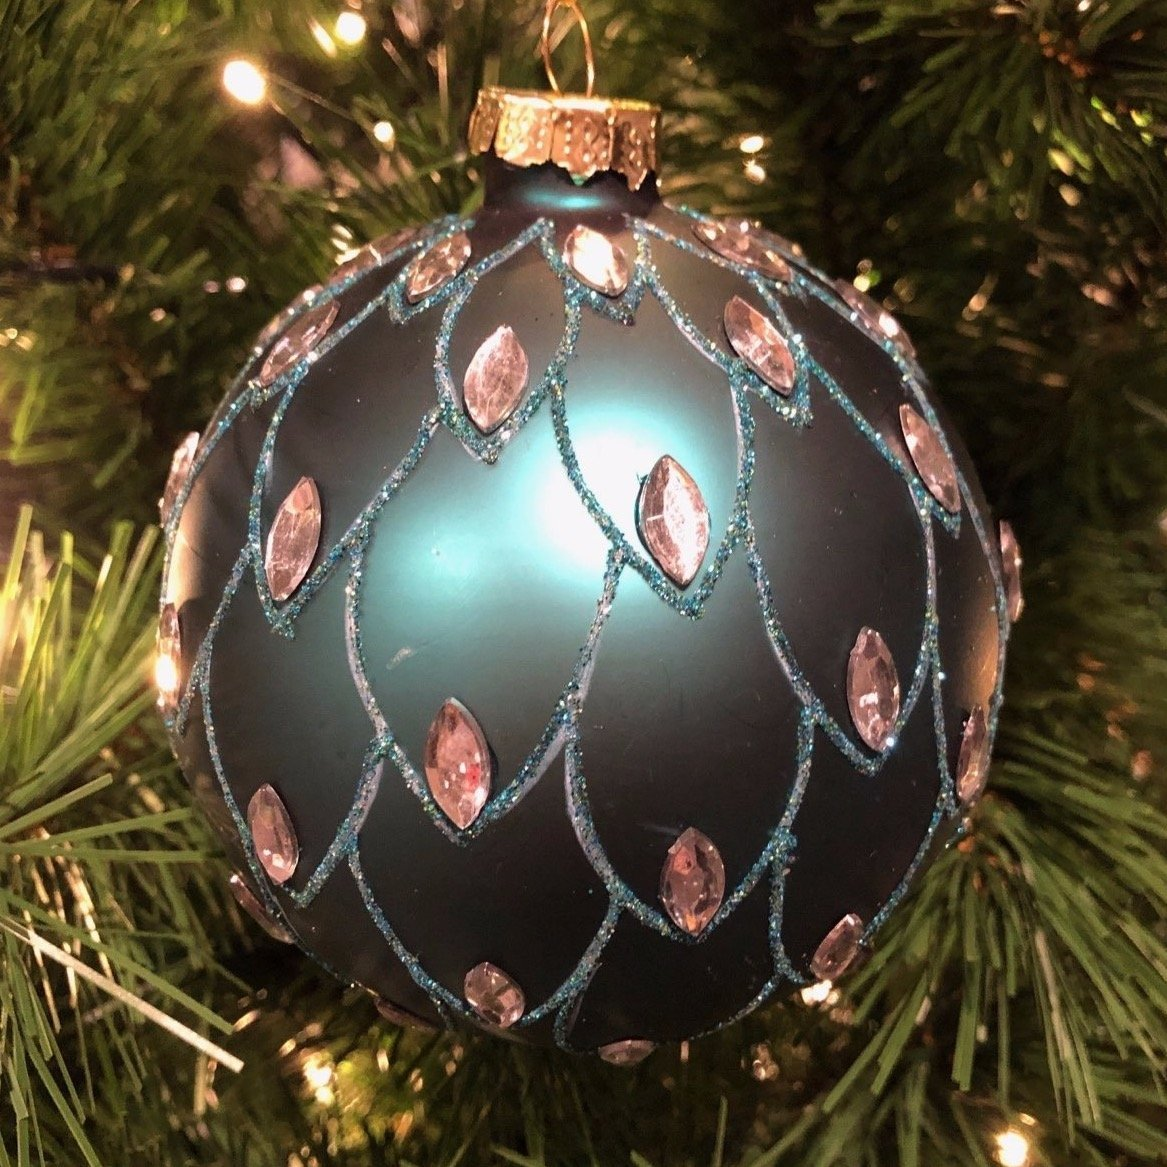 Turquoise Jewelled Ornament, 10cm - My Christmas